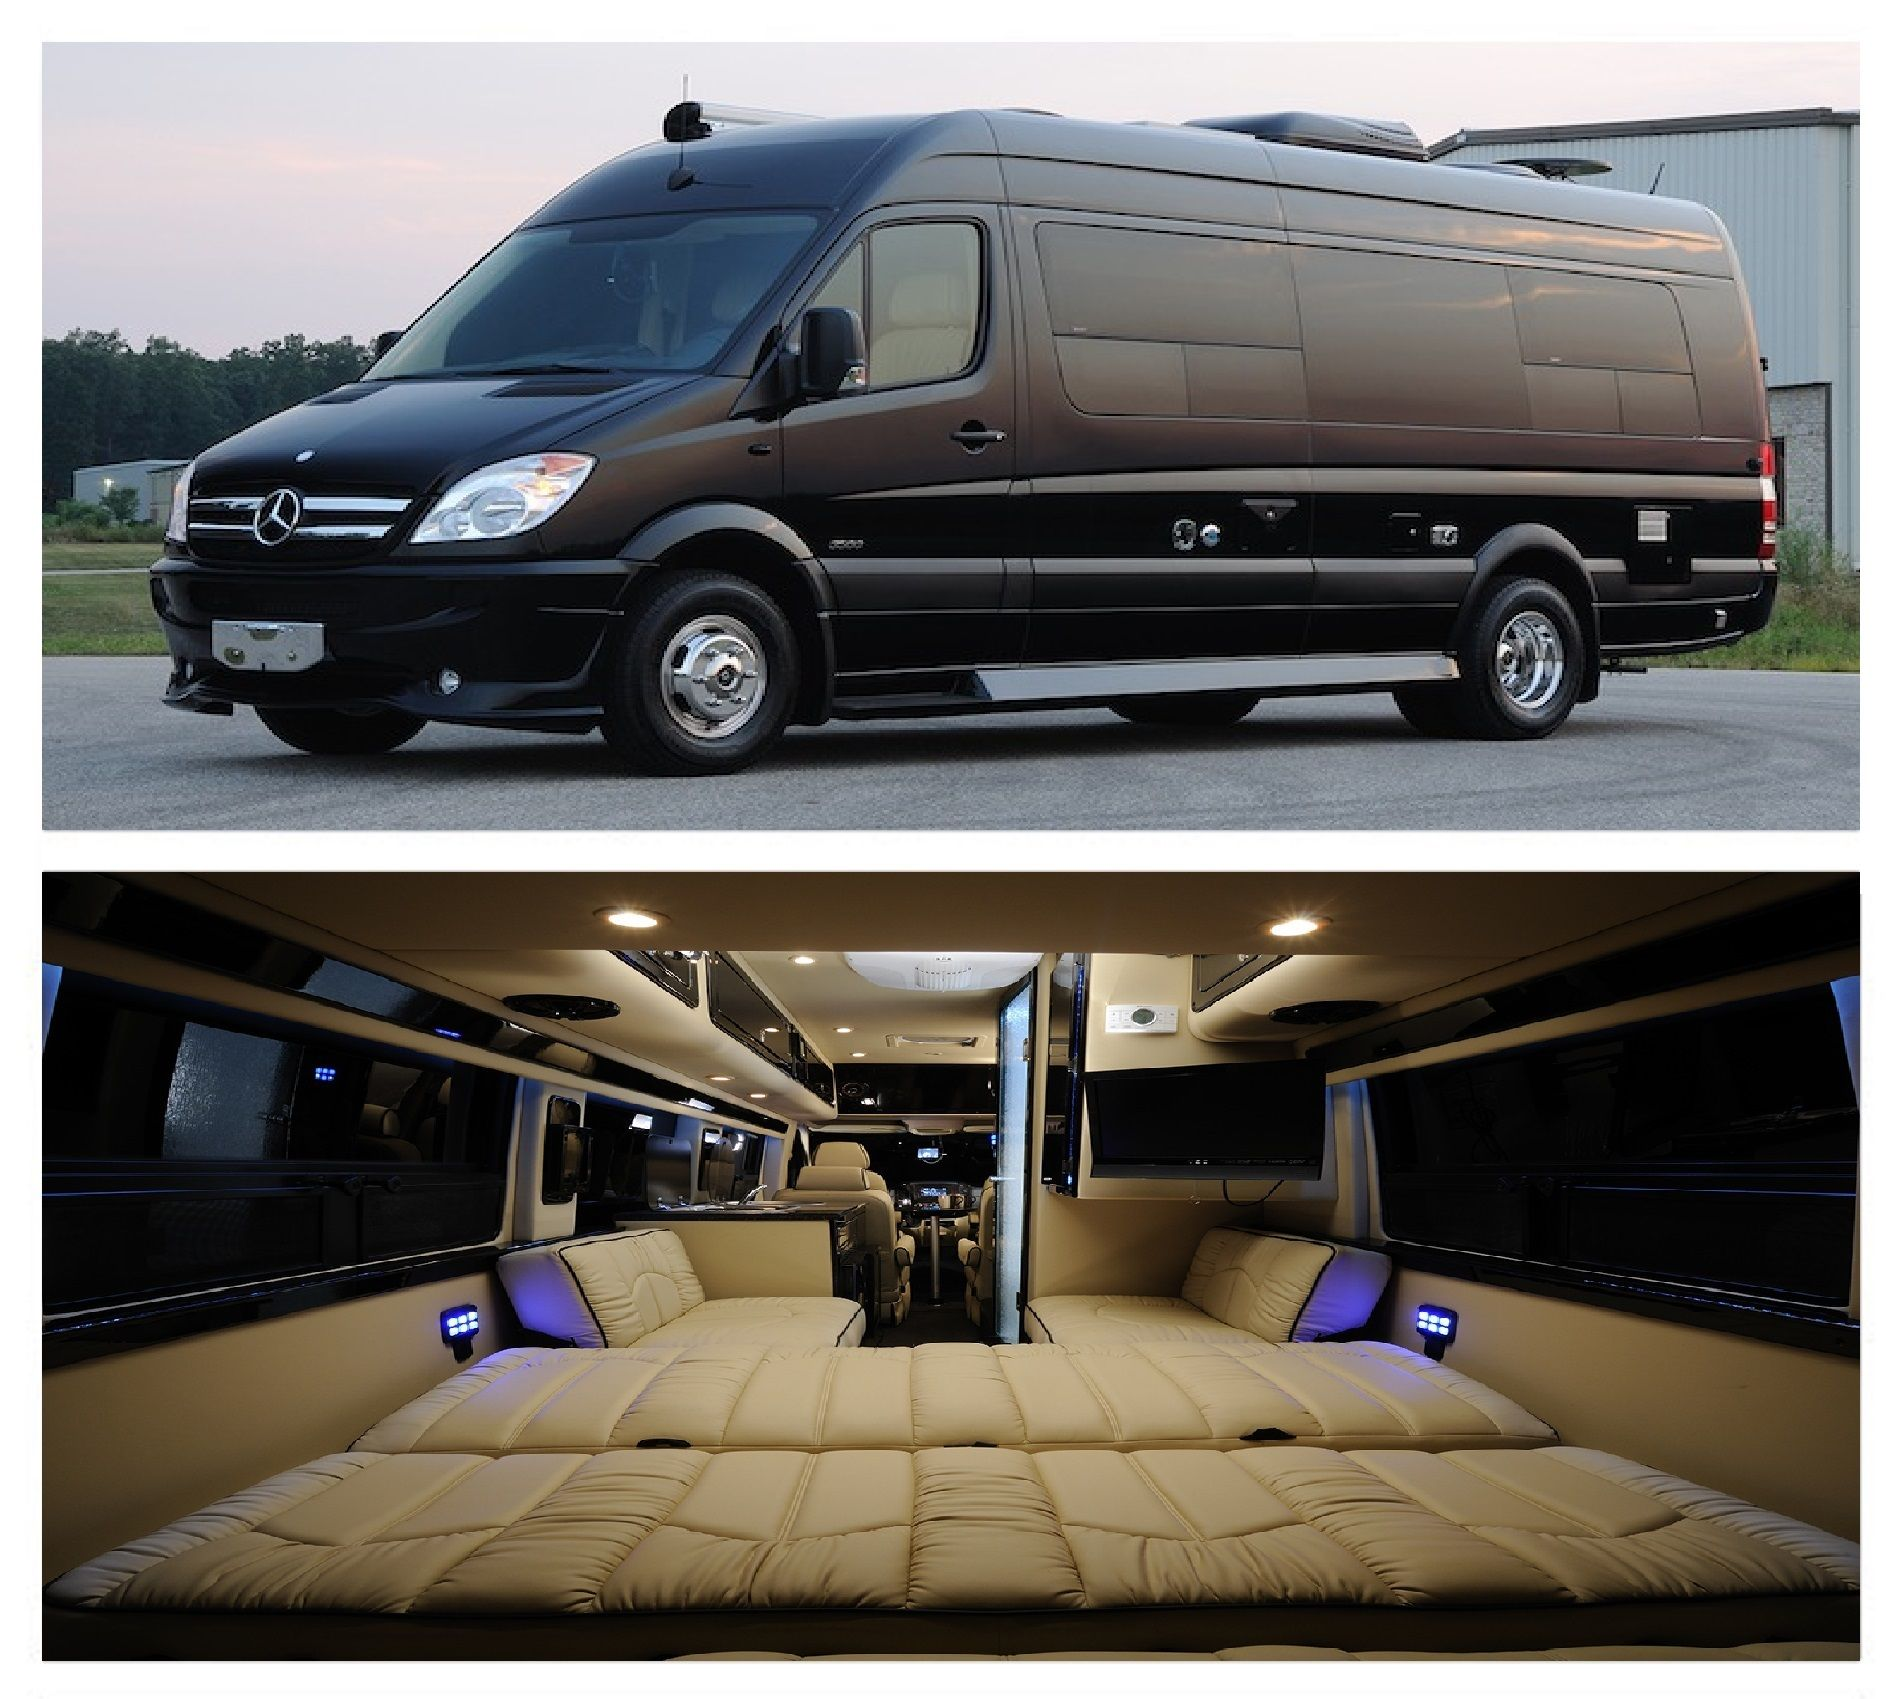 Weekender mercedes benz sprinter rv camper van http for Mercedes benz sprinter camper van